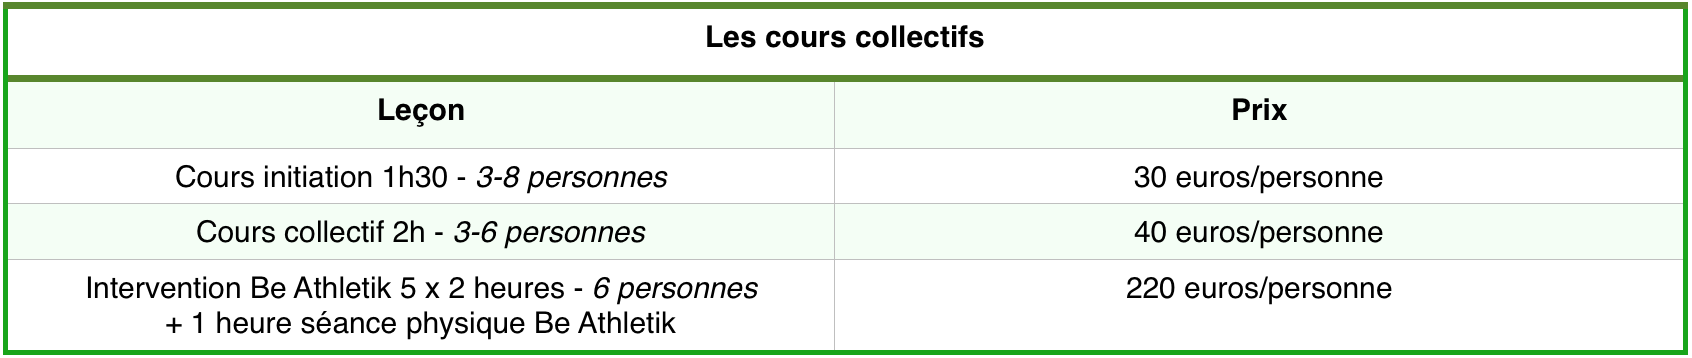 Cours-collectif